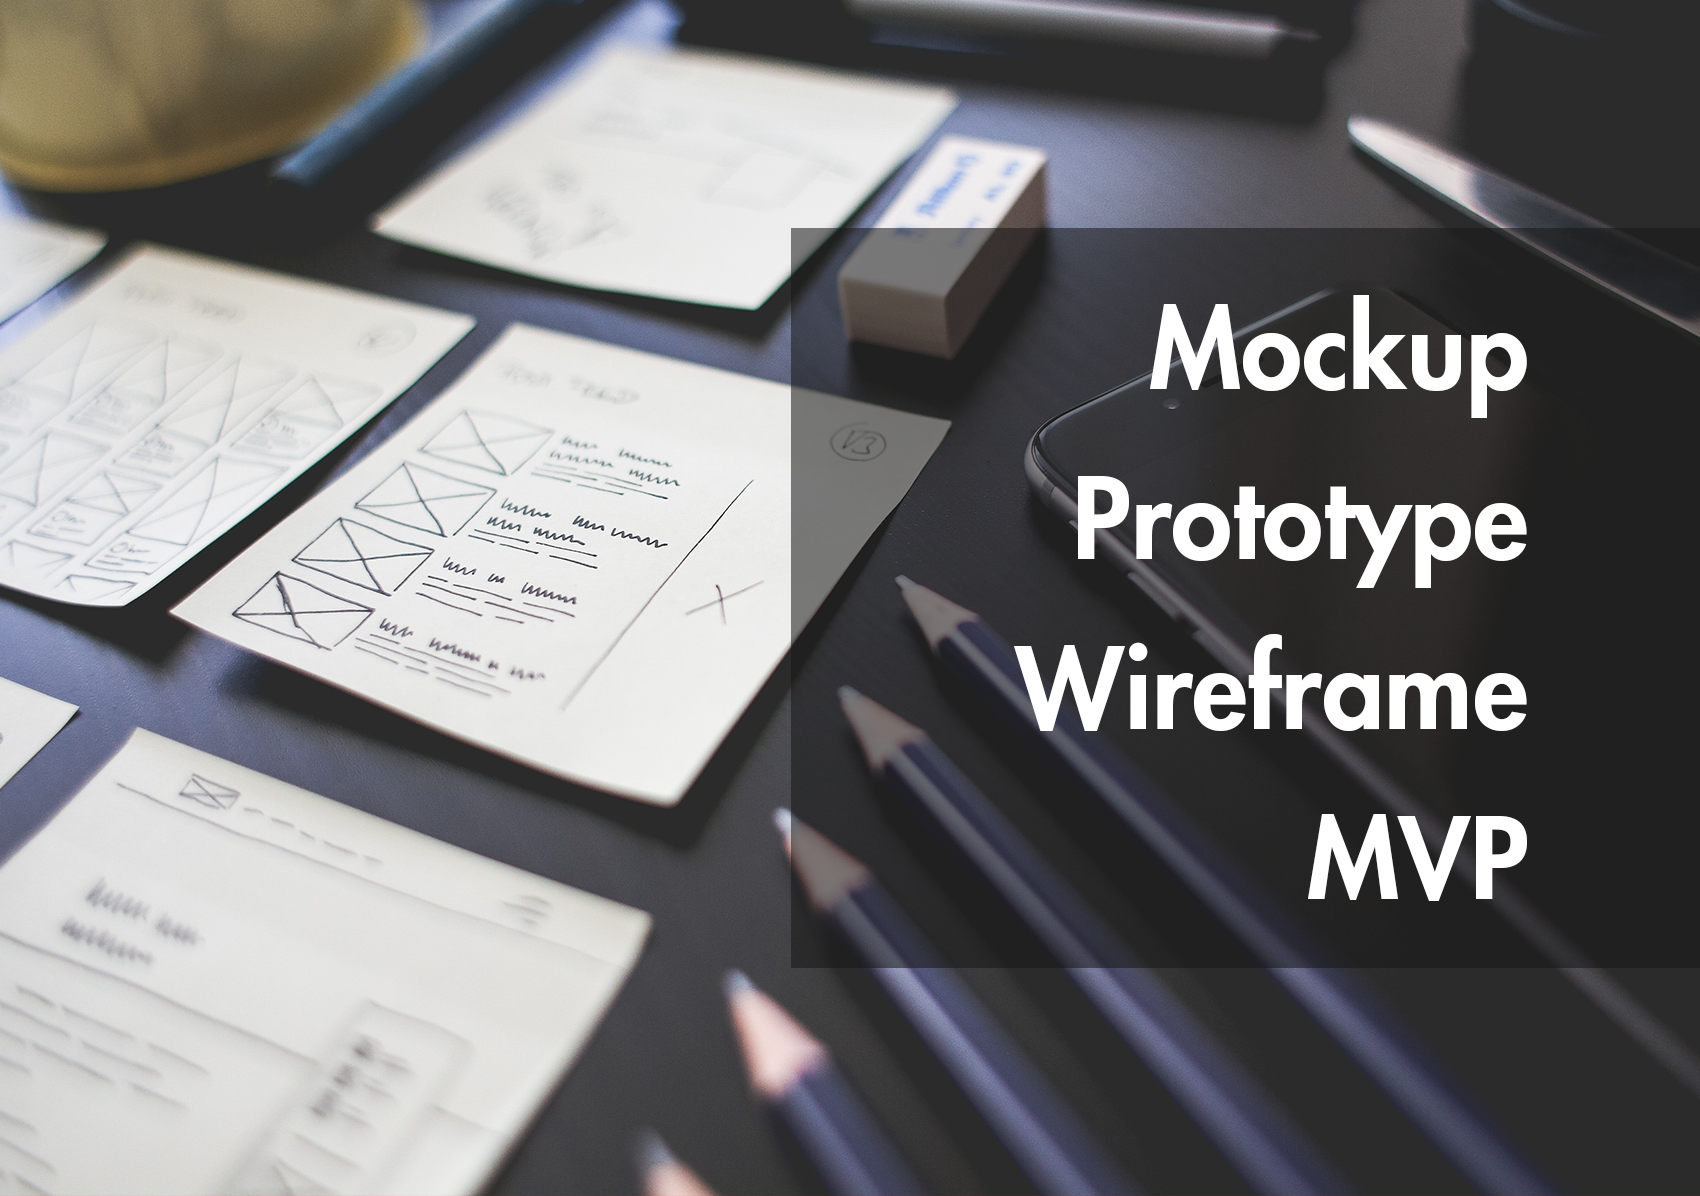 WHAT IS THE DIFFERENCE BETWEEN A WIREFRAME, MOCKUP, PROTOTYPE AND MVP?